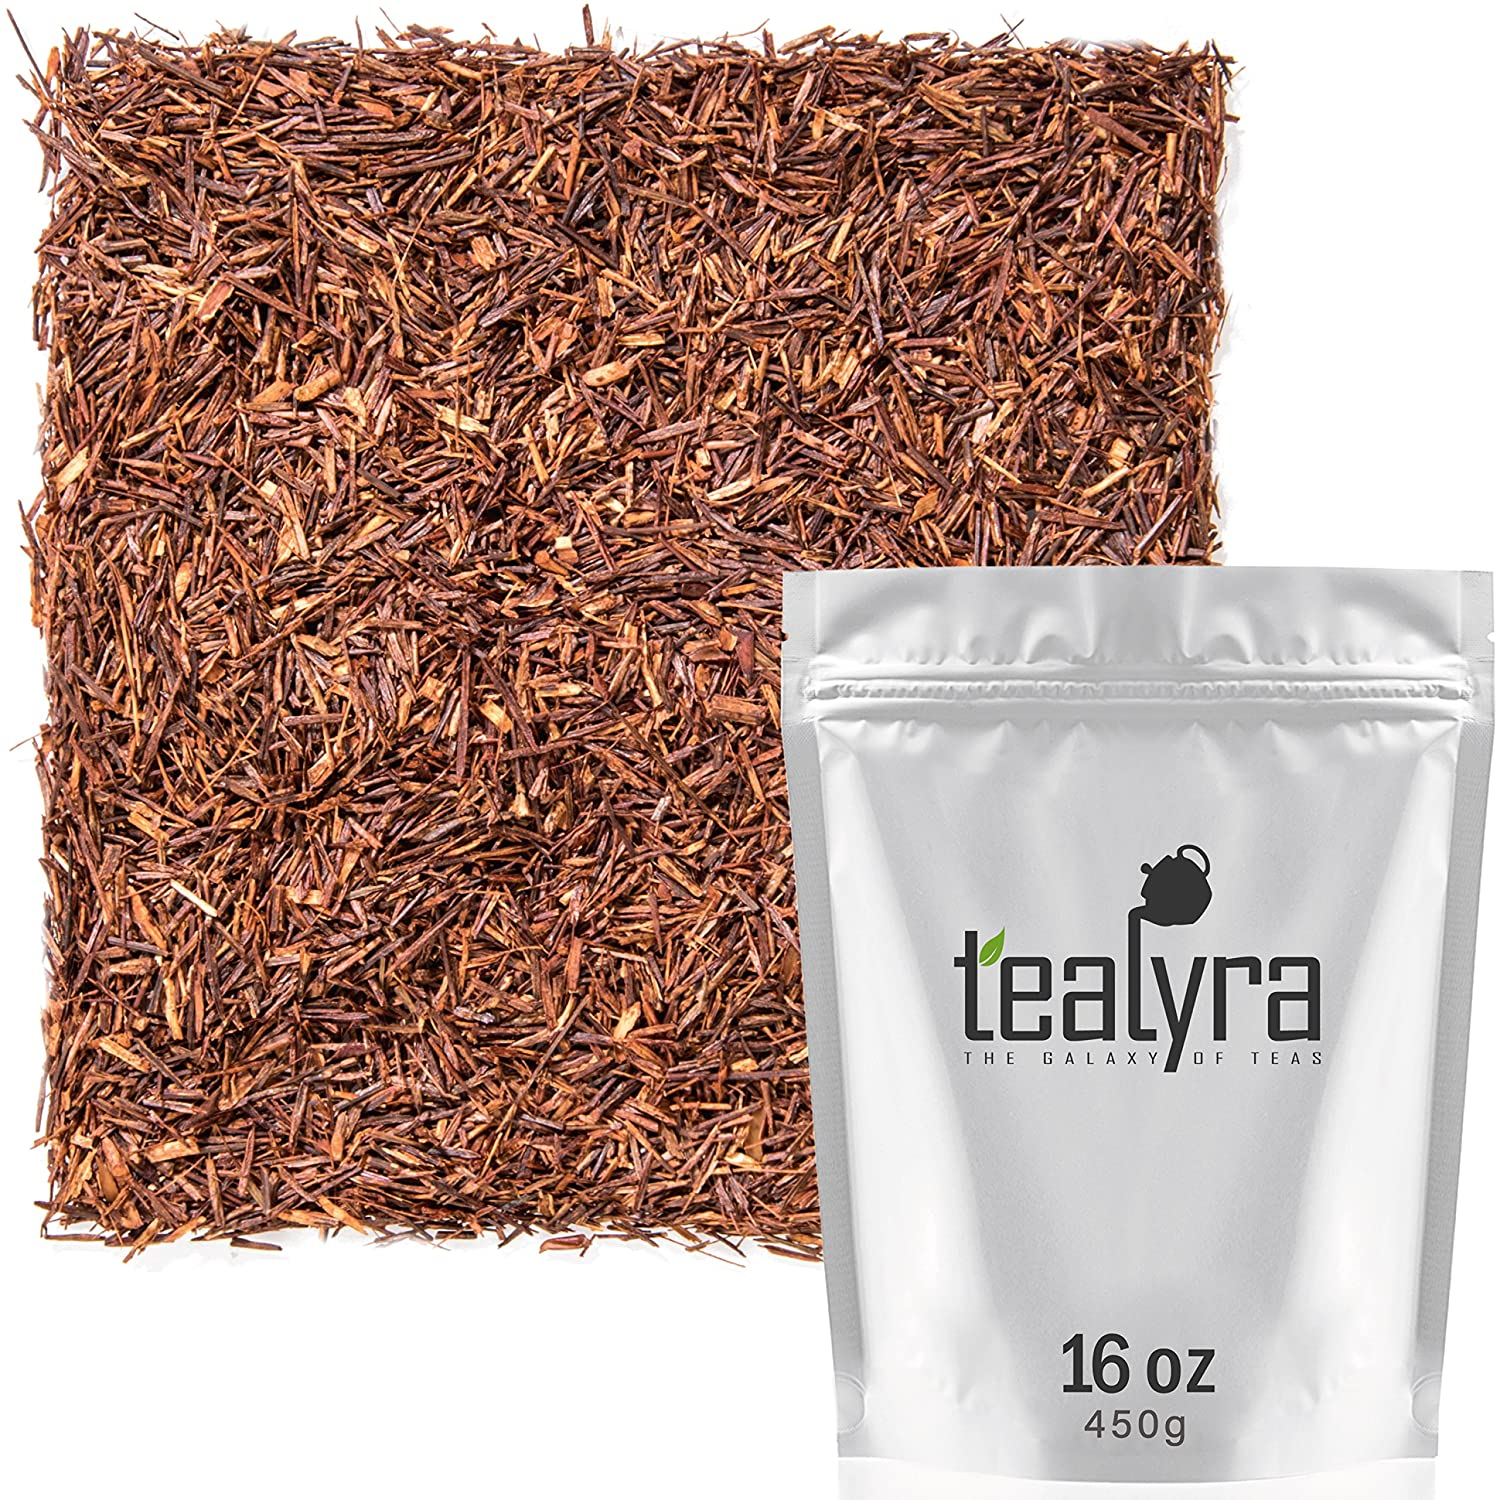 Tealyra - Pure Rooibos Red Herbal Tea - African Red Bush Loose Leaf Tea - High in Antioxidants - Relax - Detox - Low Blood Pressure - Kids Welcome - Caffeine-Free - Organically Grown - 220g (8-ounce)